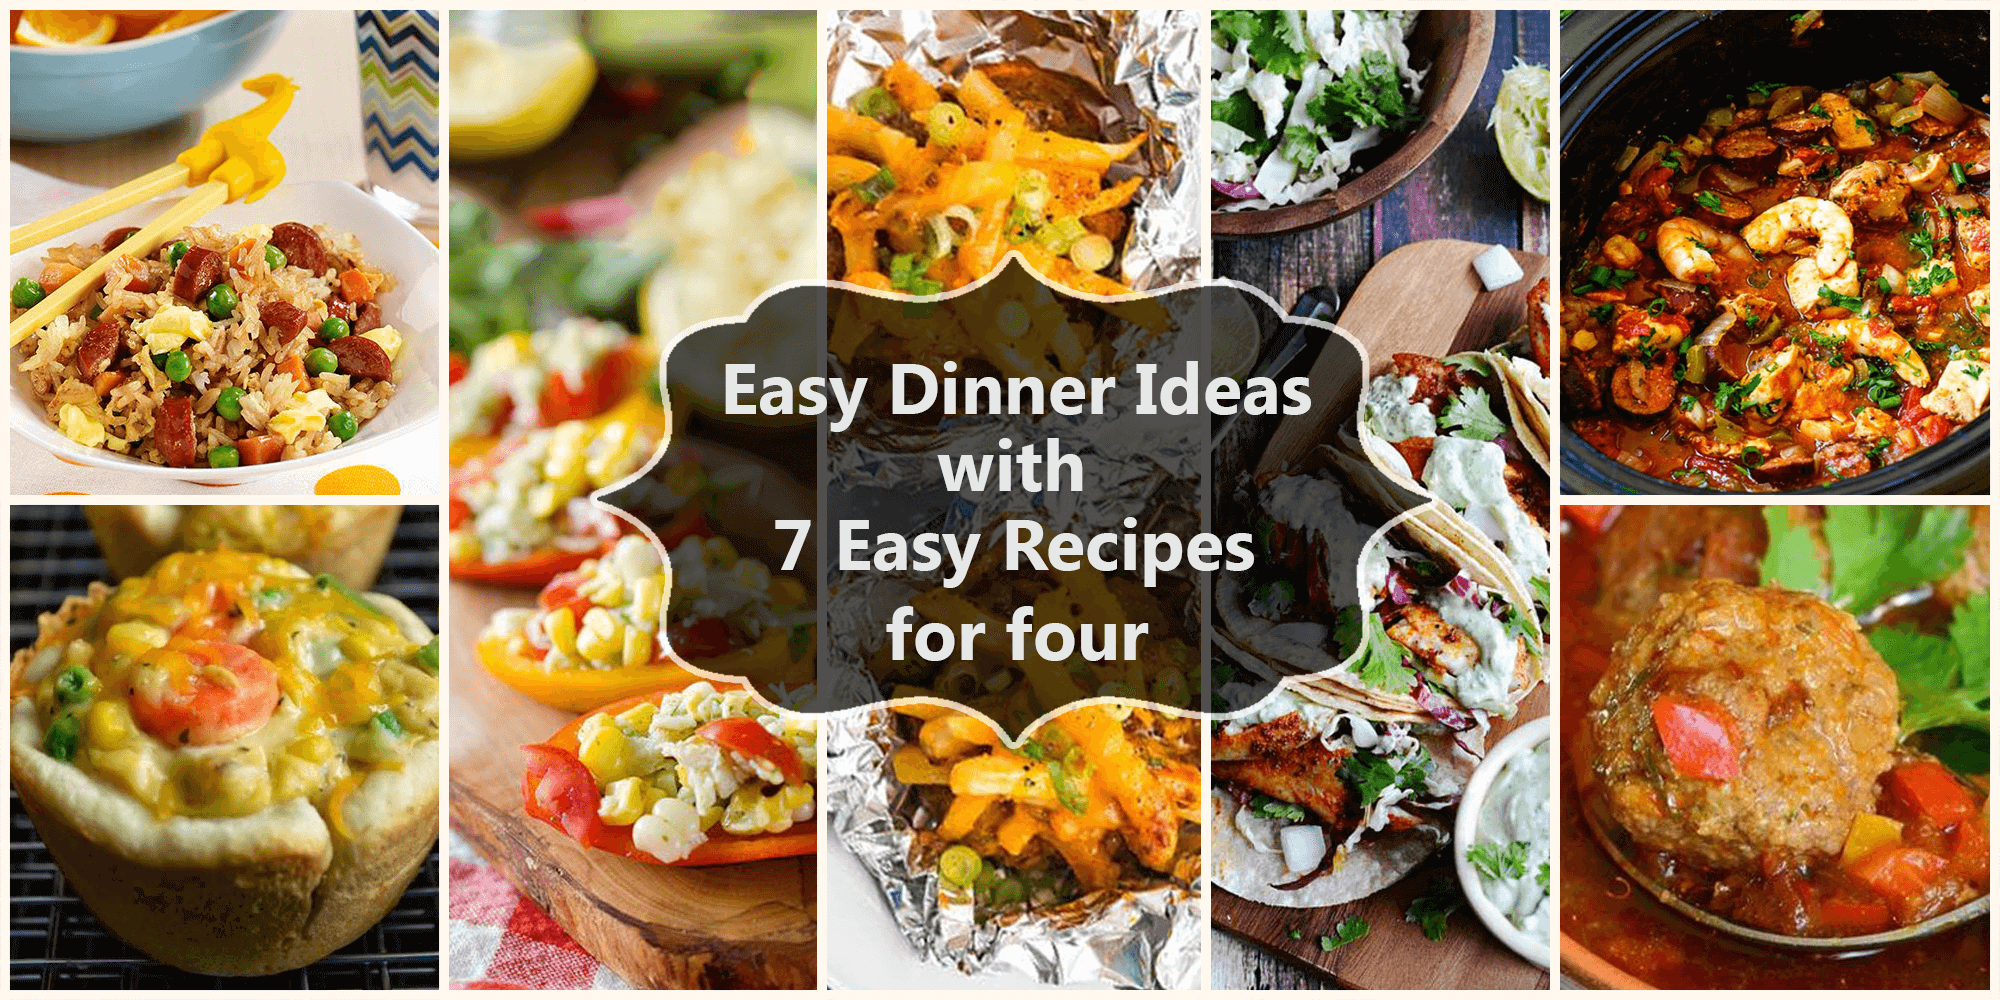 7 healthy easy recipes for 4 easy dinner ideas with 7 easy recipes for 4 forumfinder Gallery